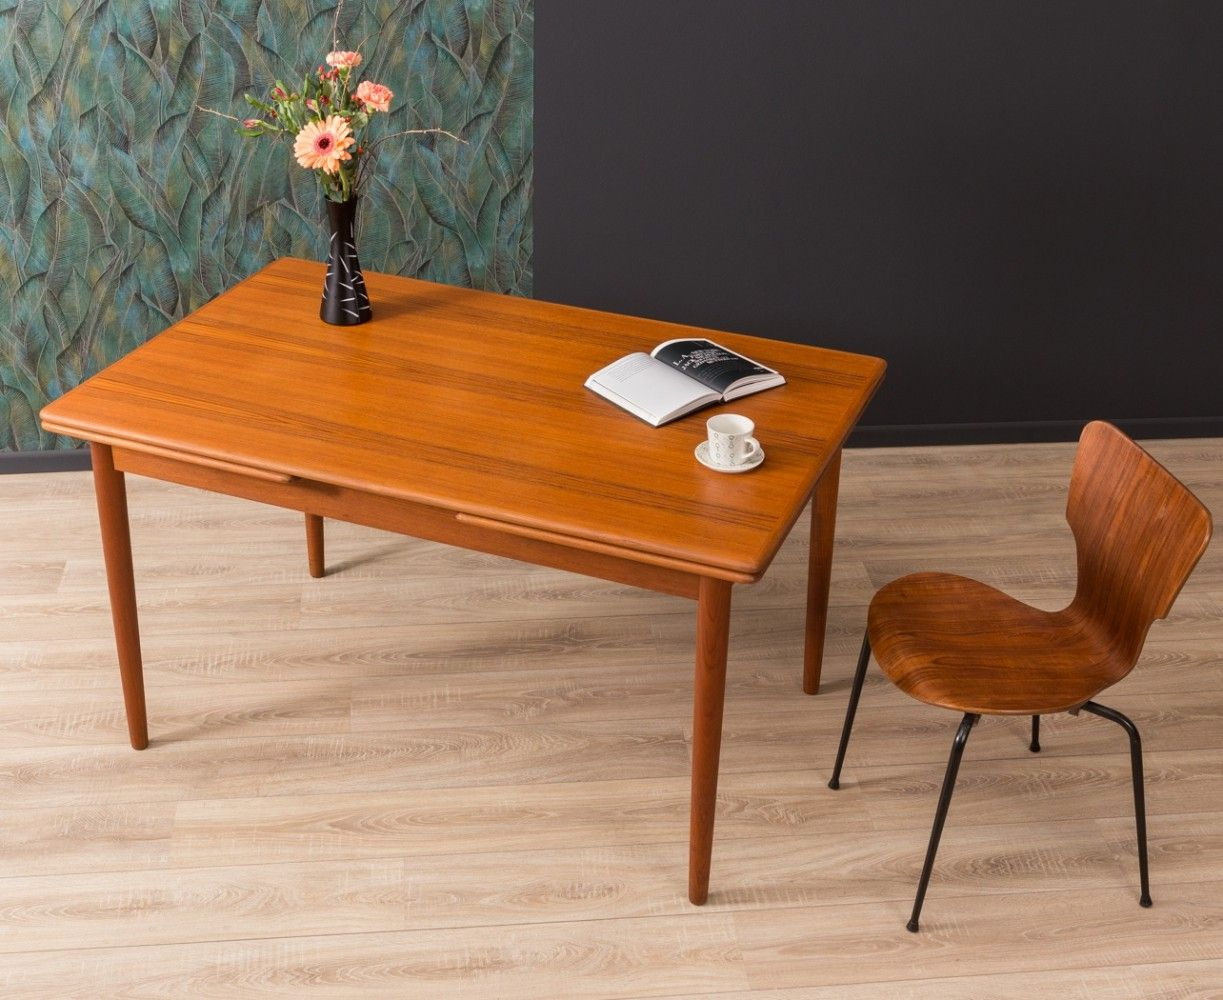 For Sale German Extendable Dining Table From The 1960s